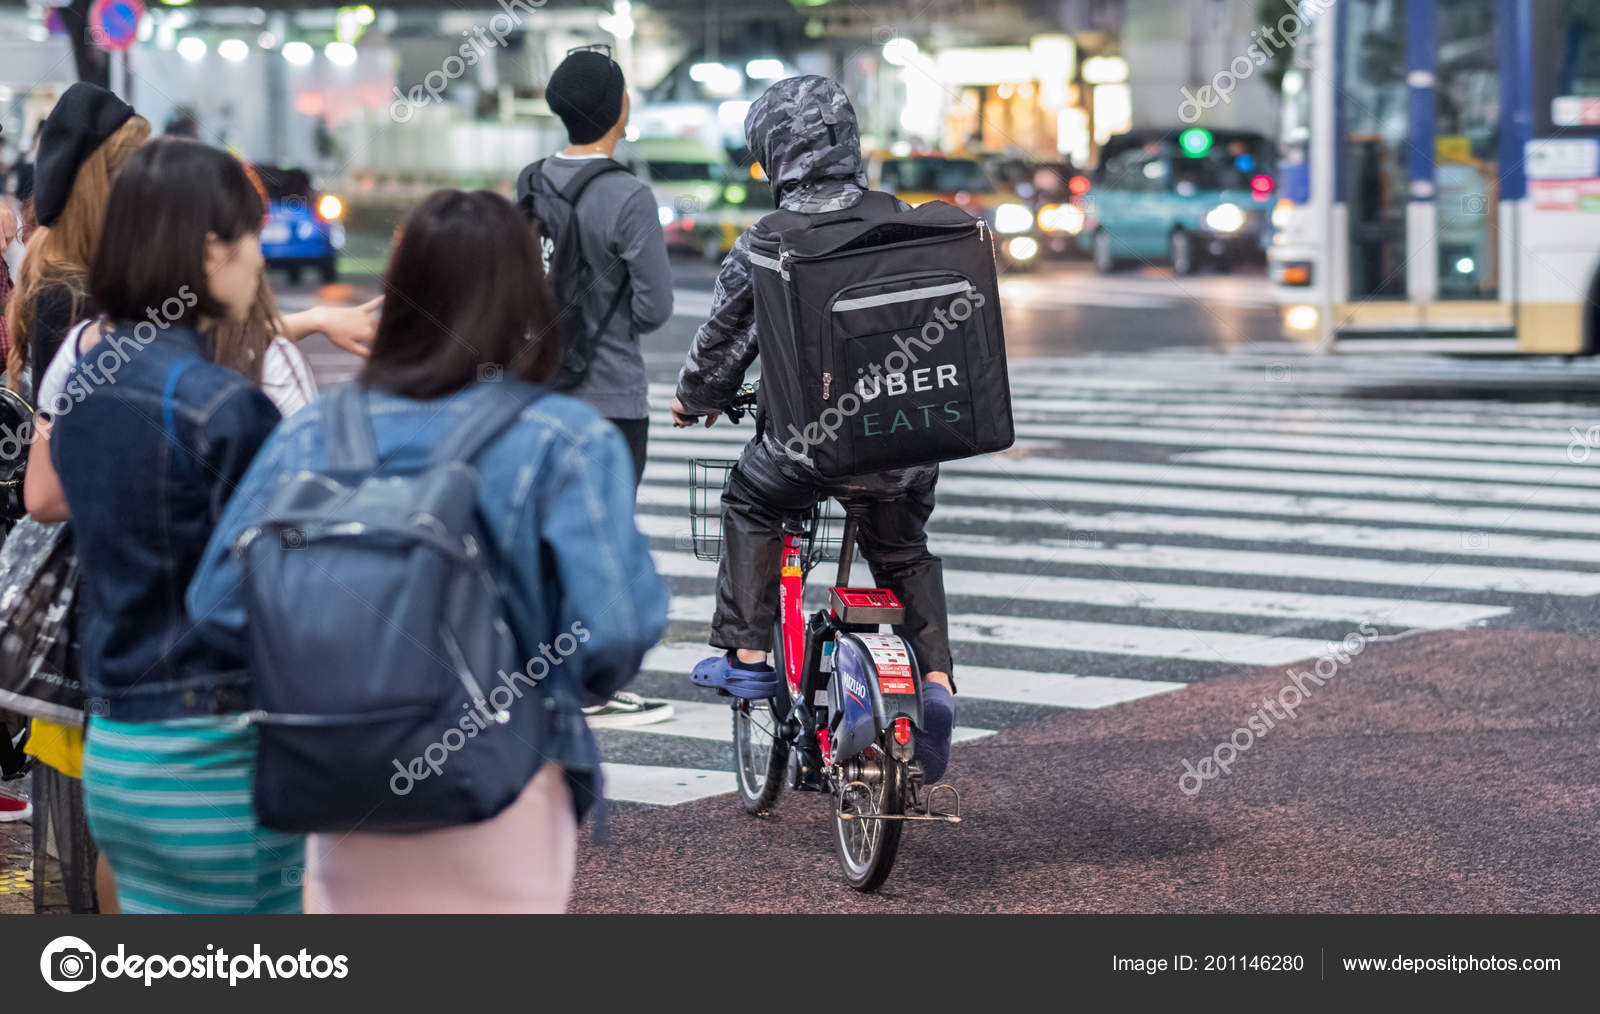 tokyo japan june 23rd 2018 uber eats food delivery services – stock